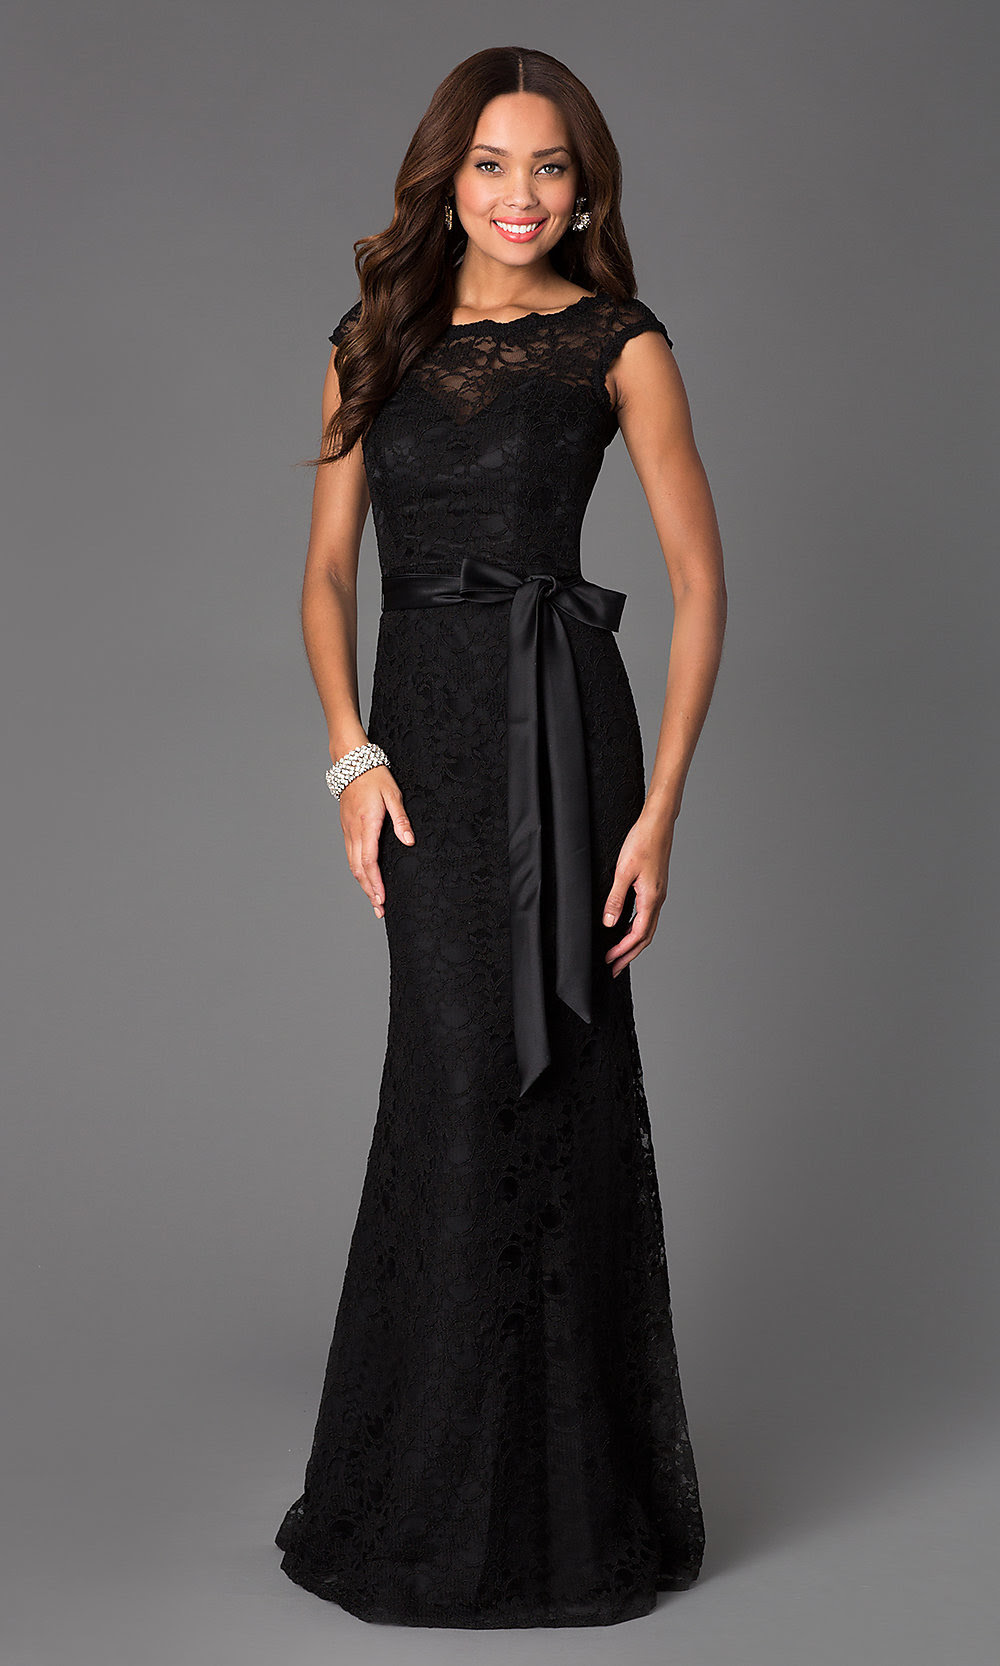 Black evening dress images